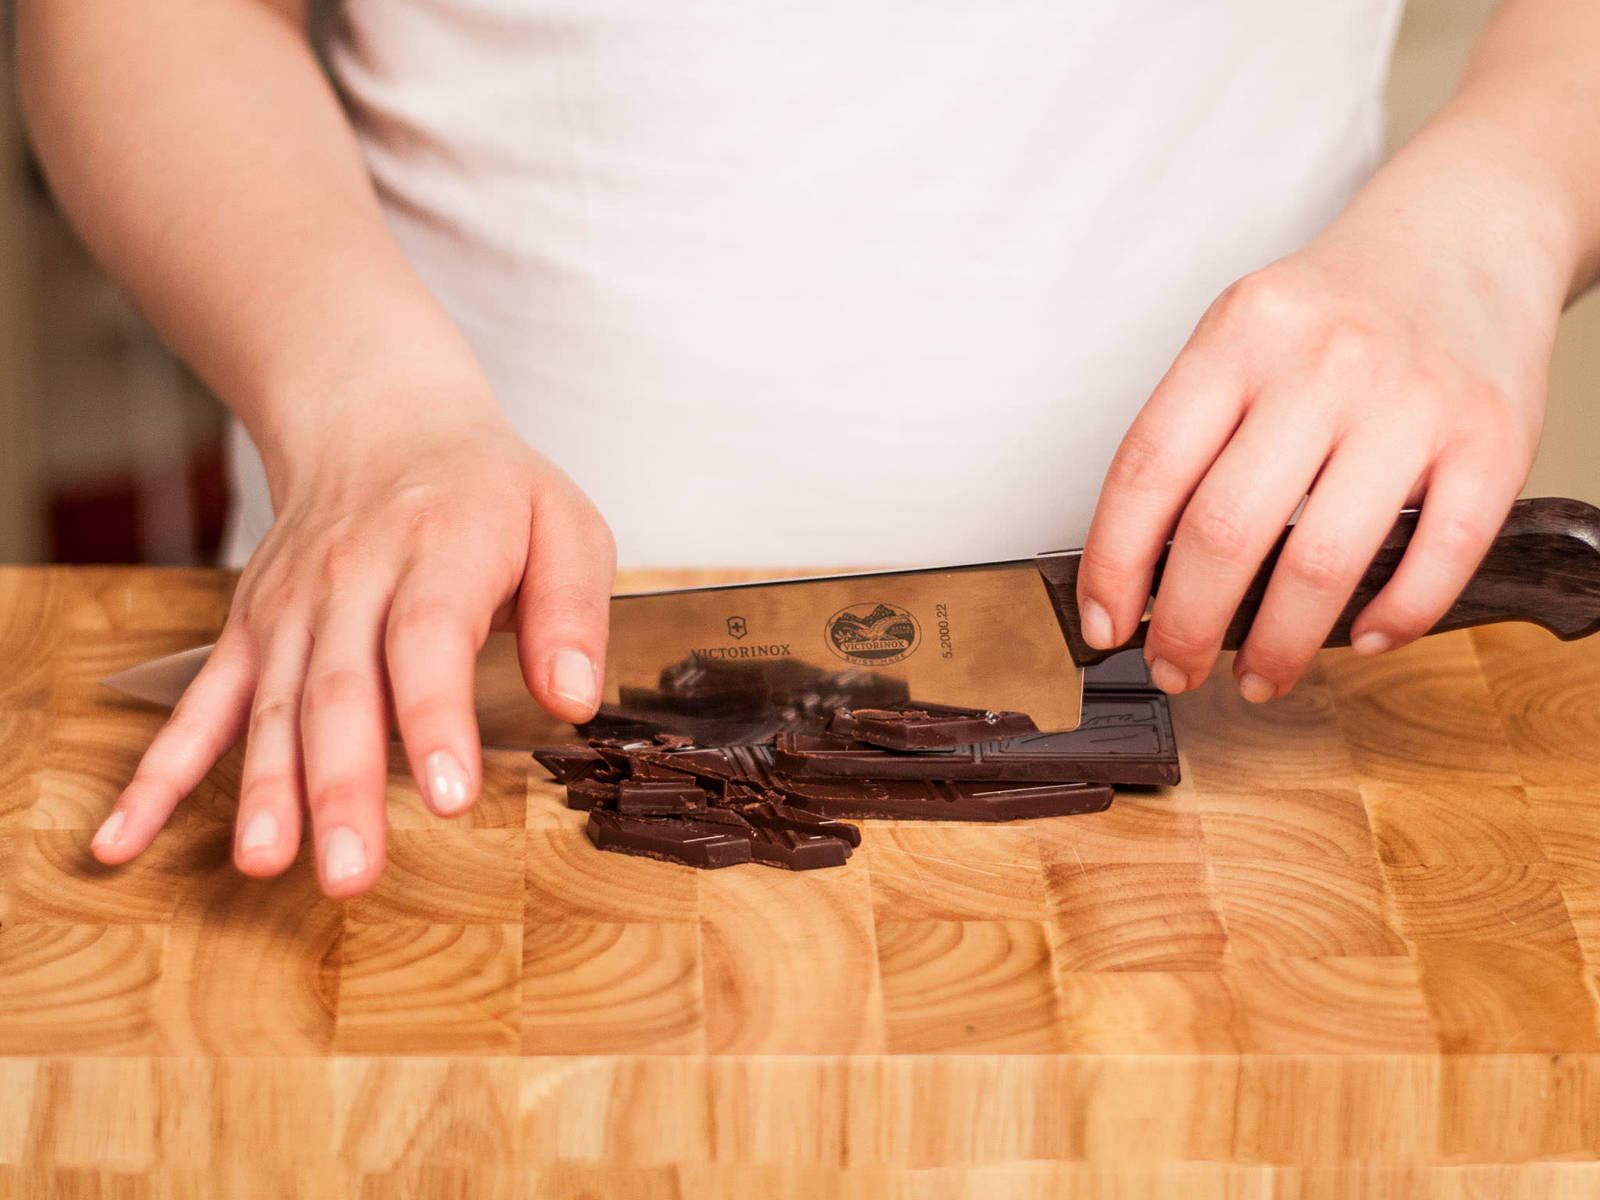 Roughly chop chocolate.